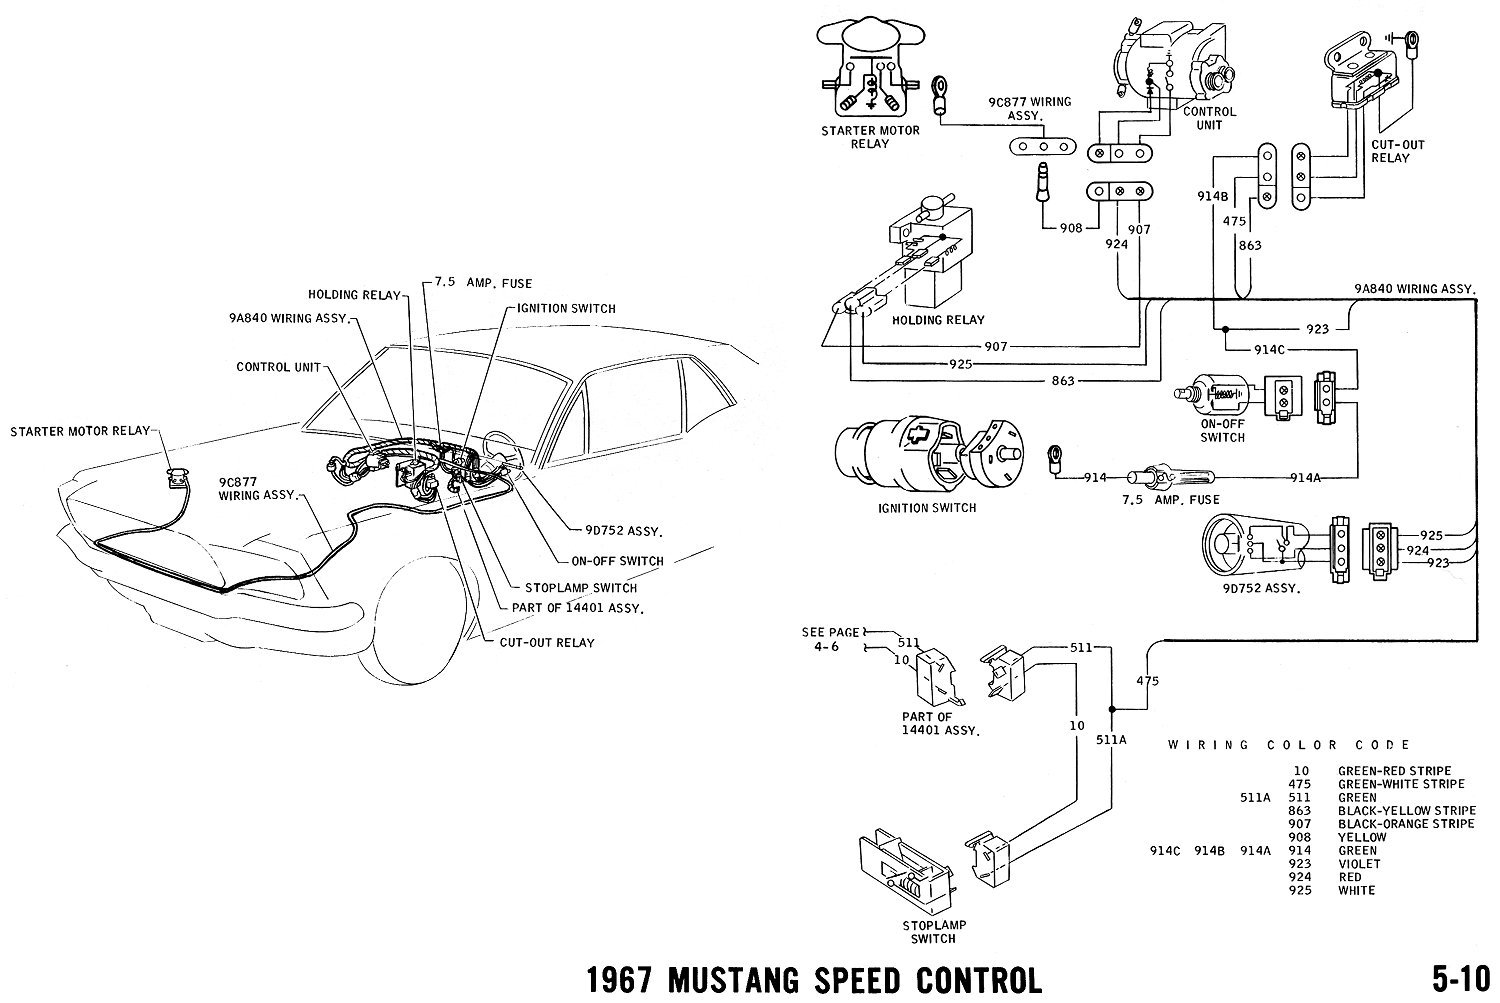 67speed 1967 mustang wiring and vacuum diagrams average joe restoration 2007 Mustang Wiring Diagram at love-stories.co